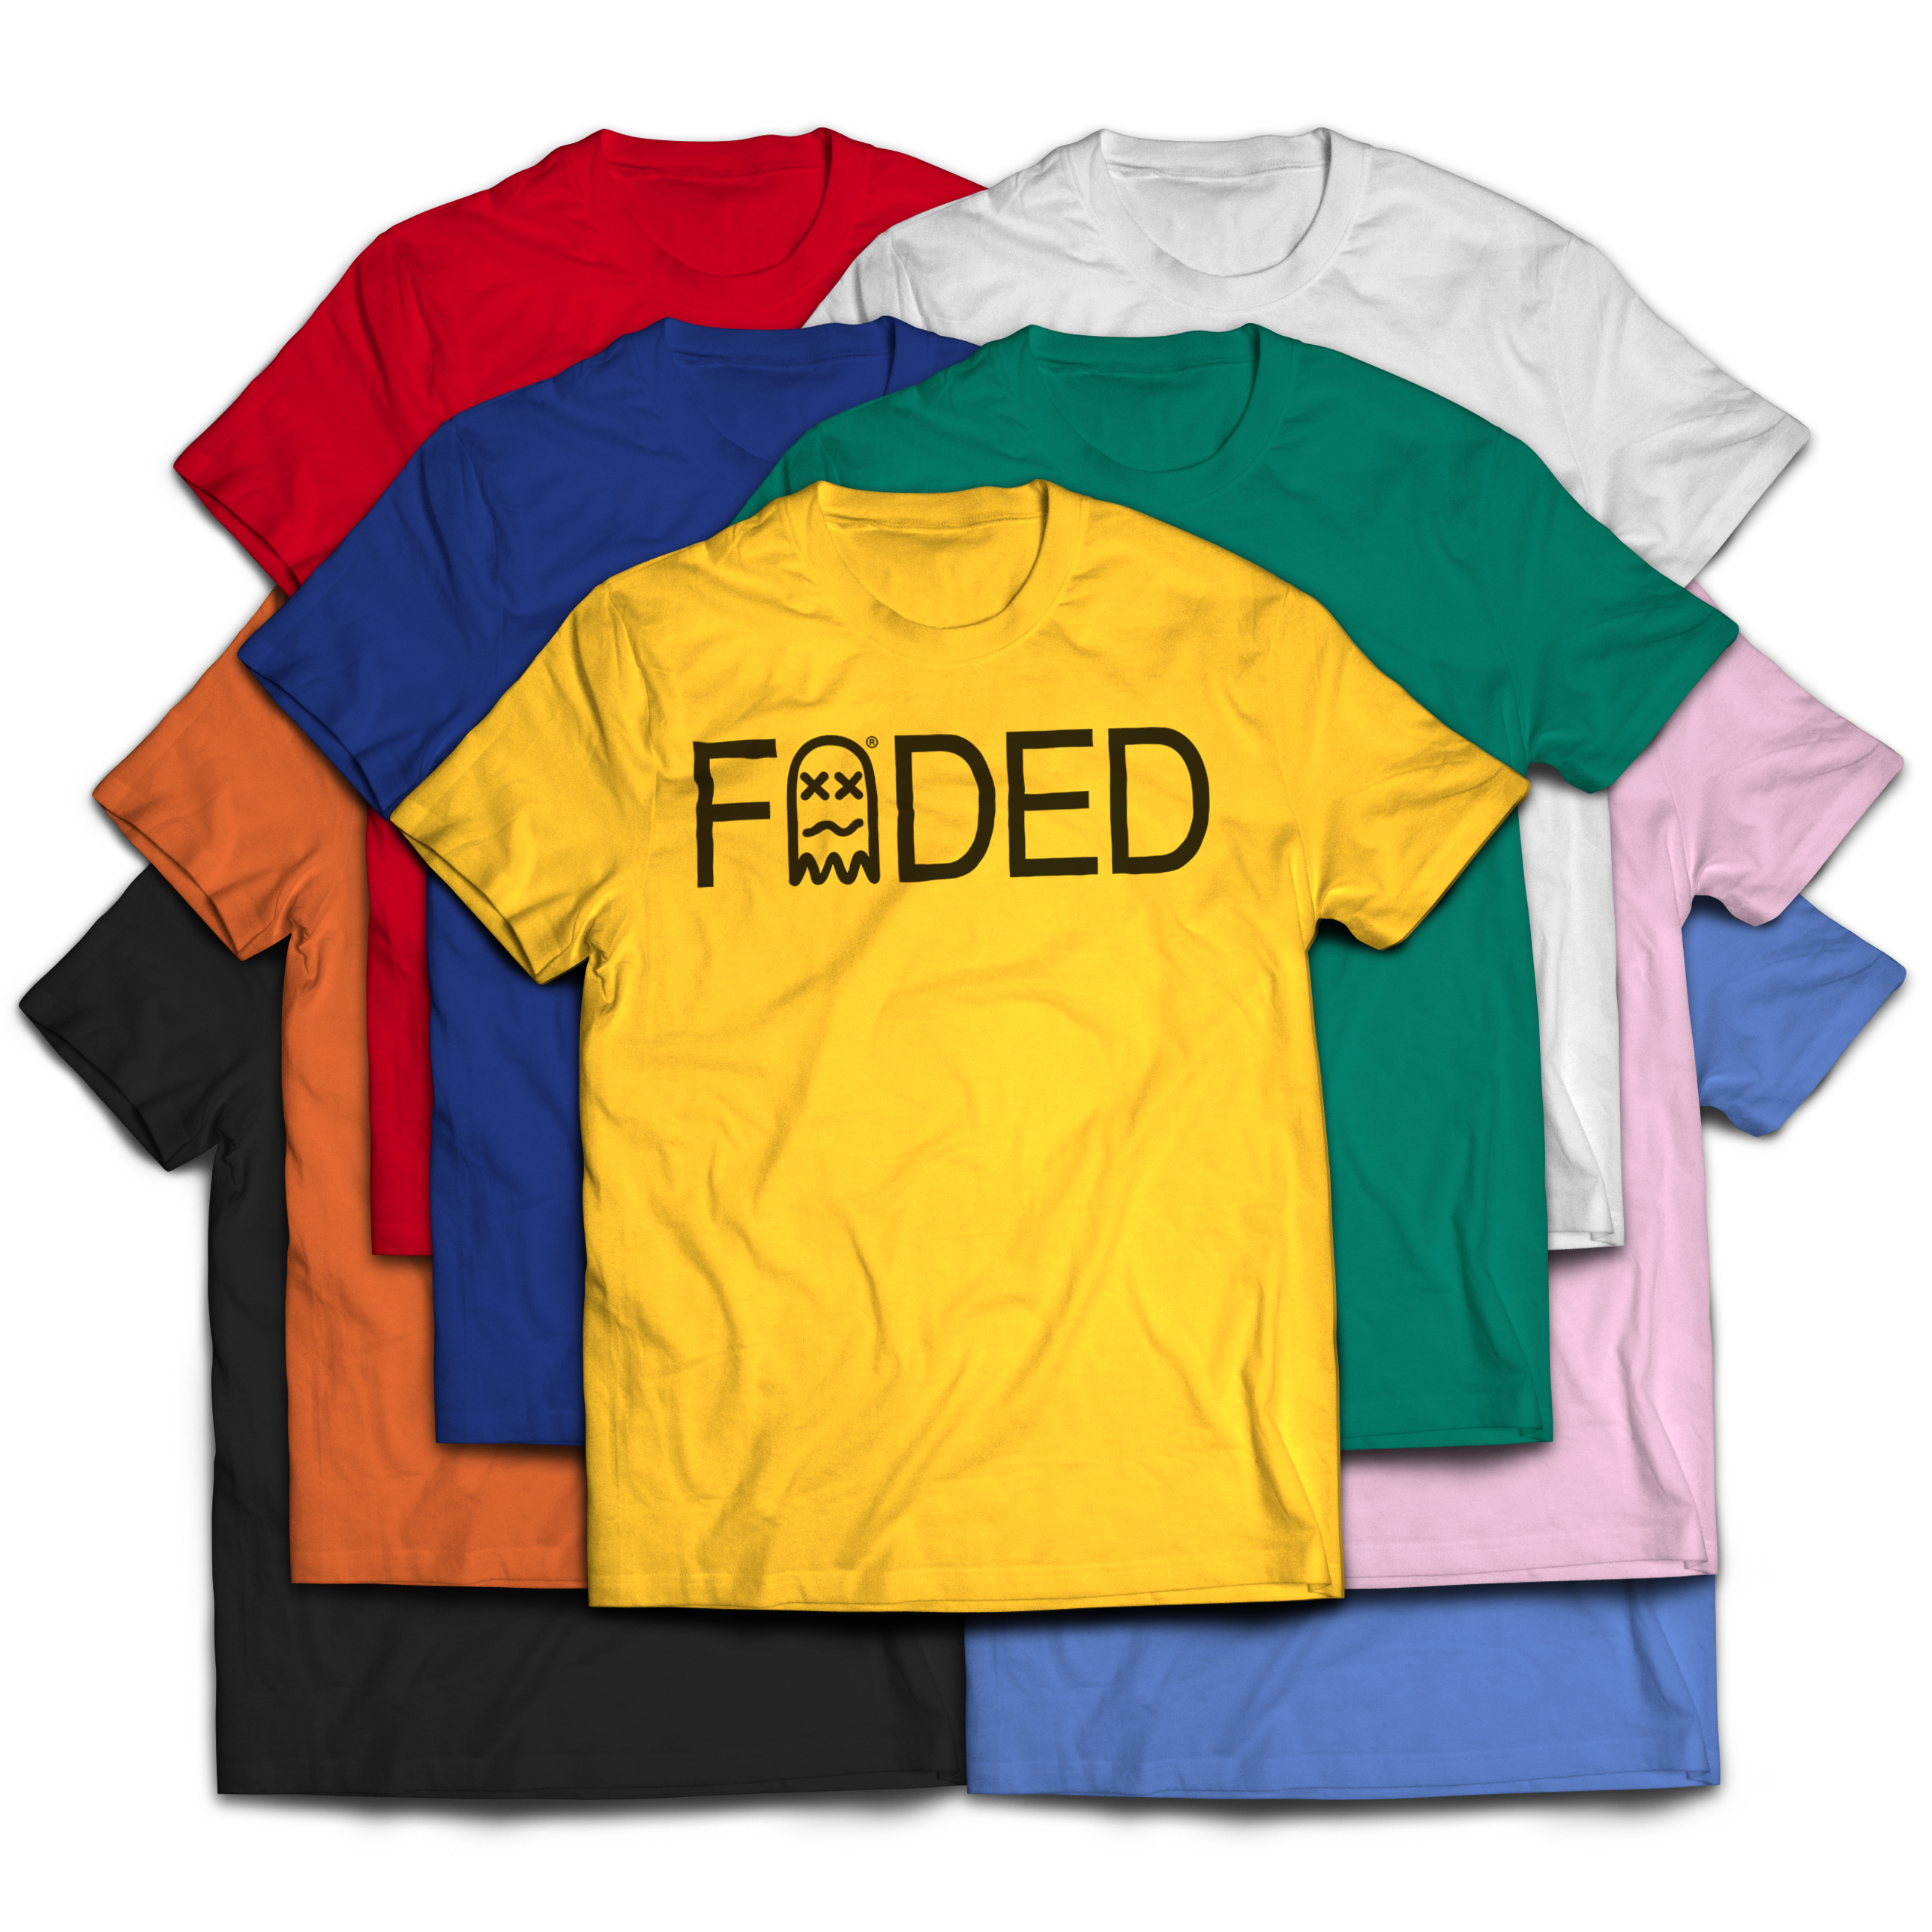 Faded stamp tee 9 colors for Faded color t shirts